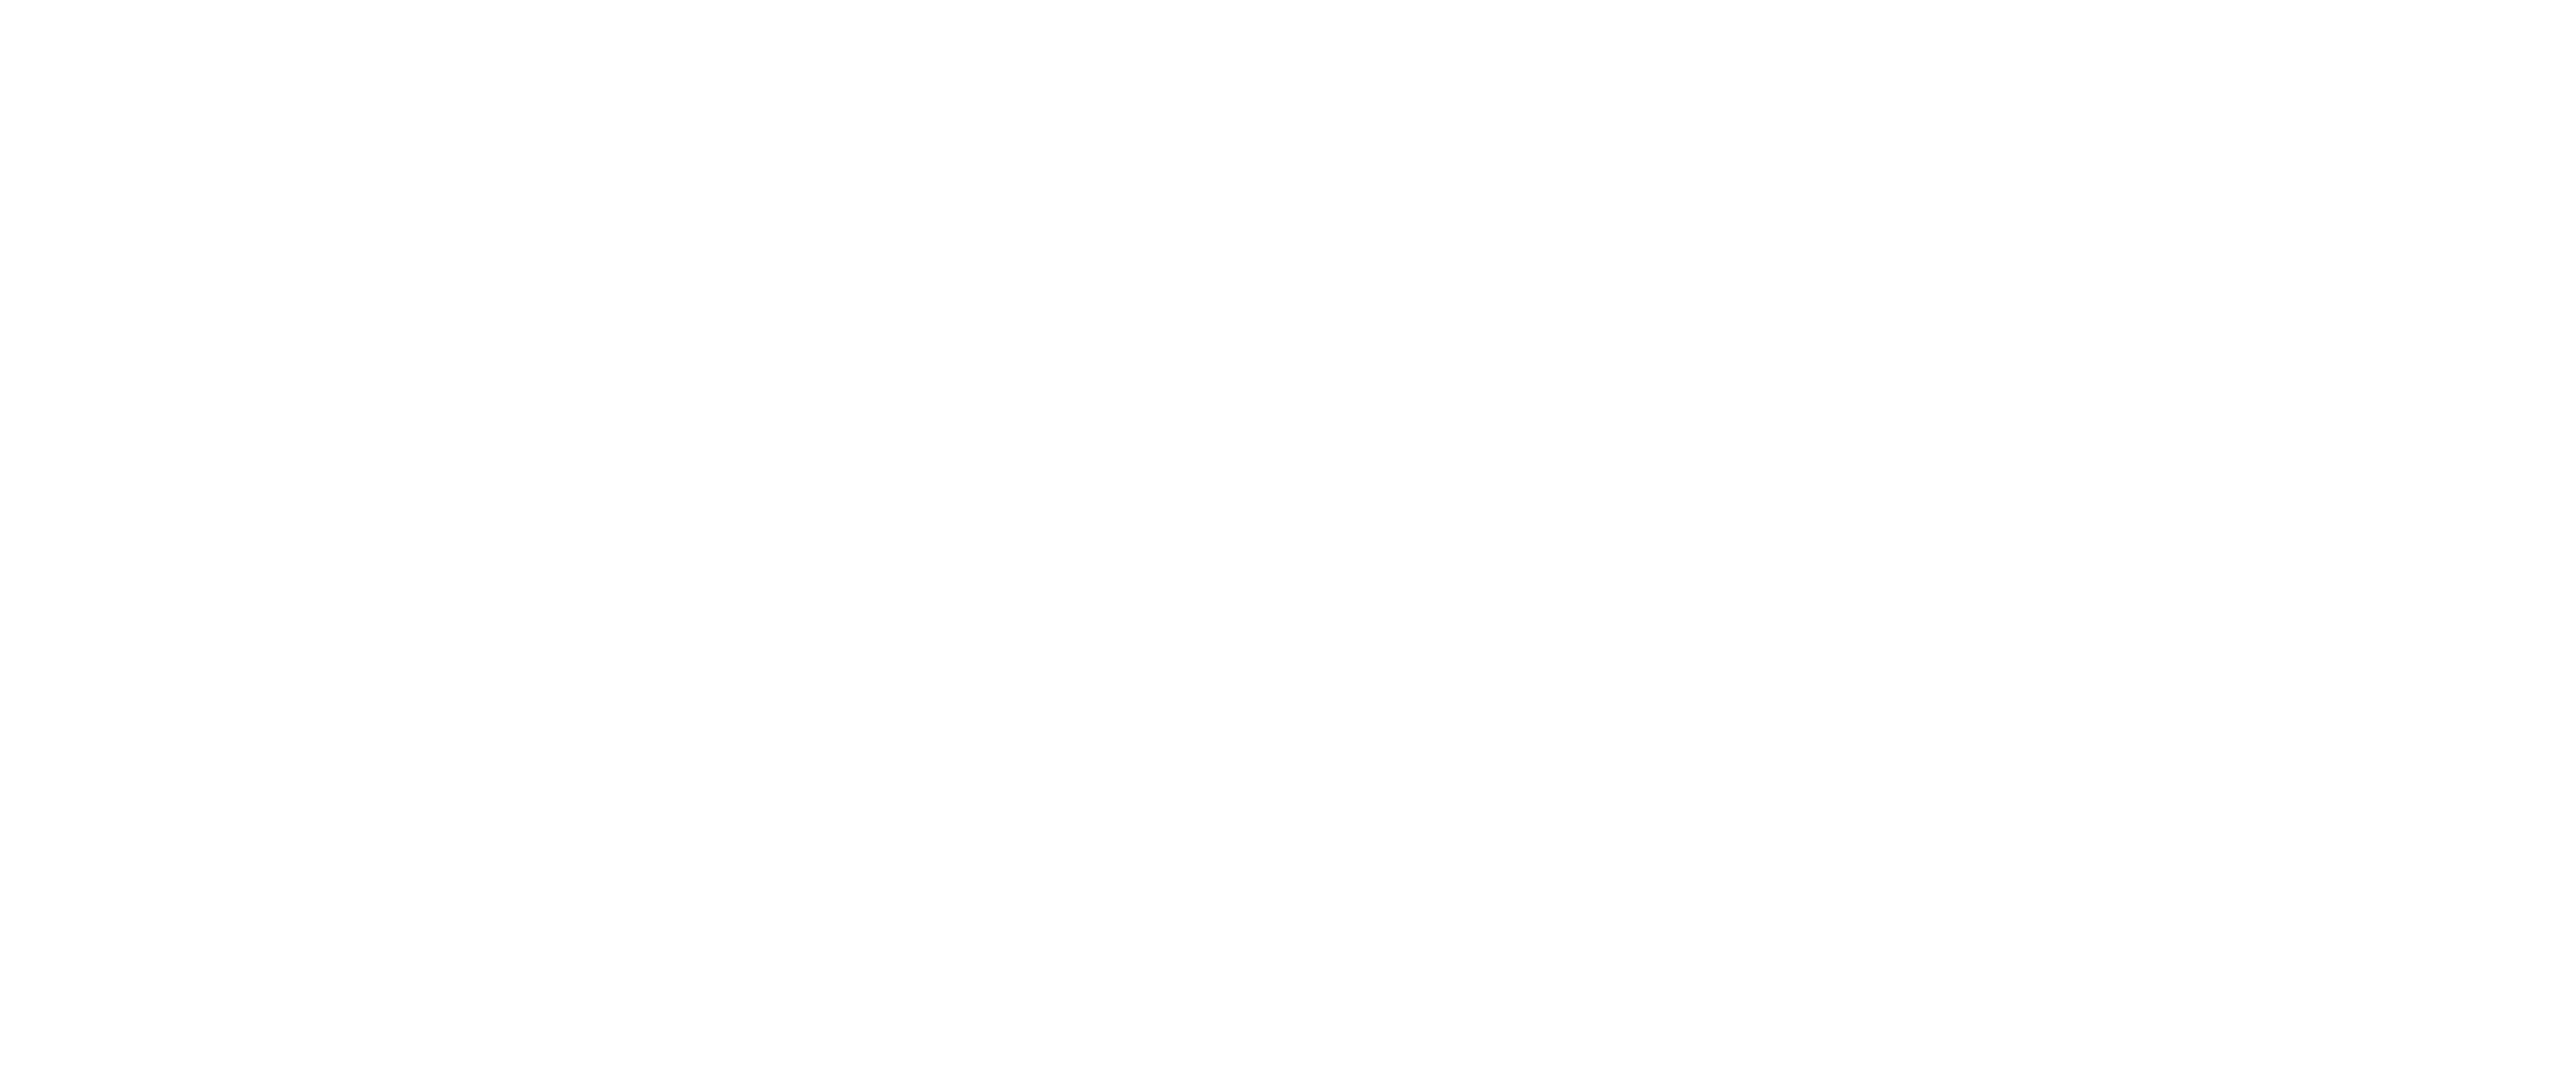 graphic design to make your buiness shine australian graphic designer